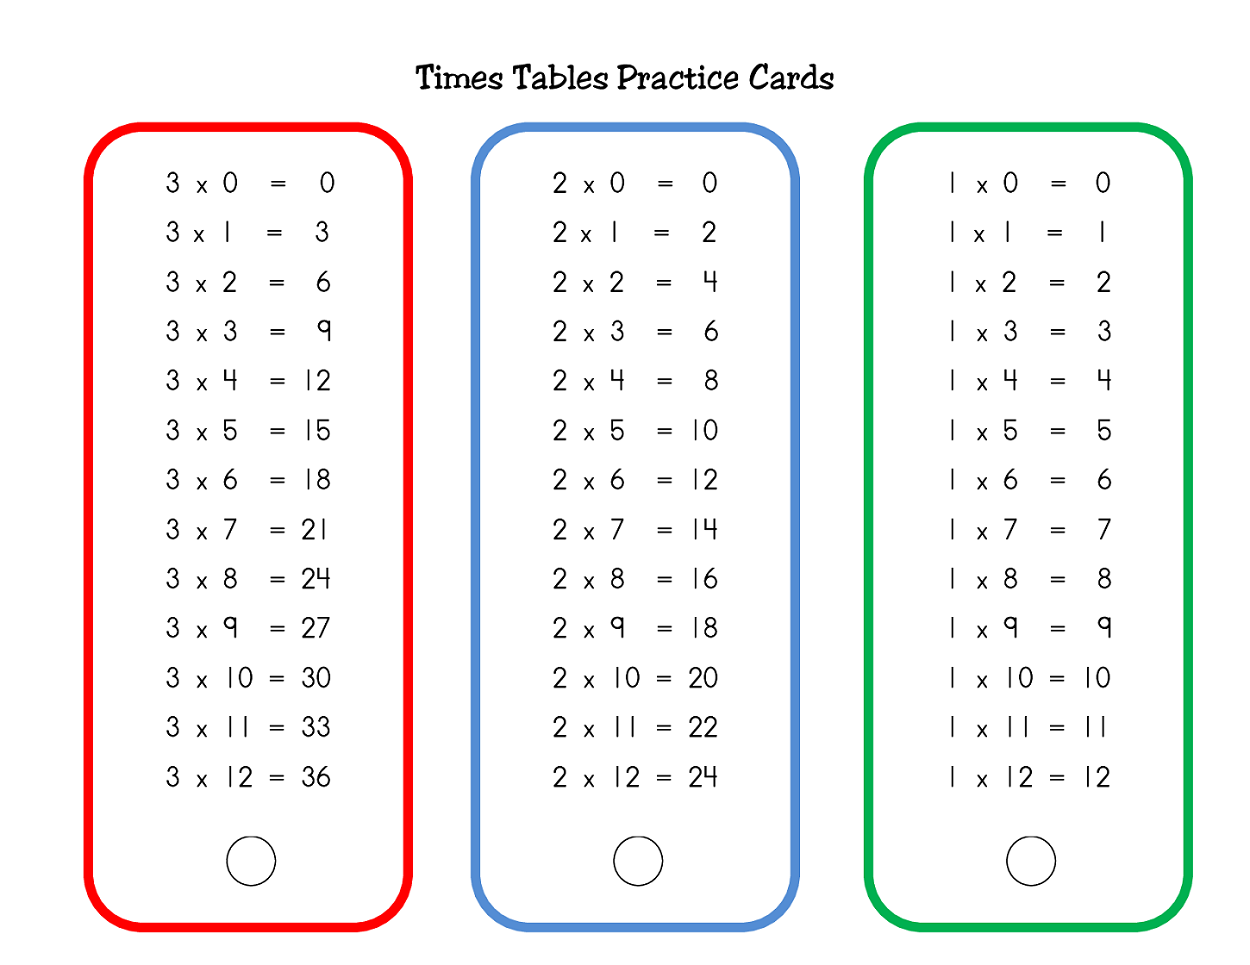 Times Tables Worksheets 1-12 | 101 Printable